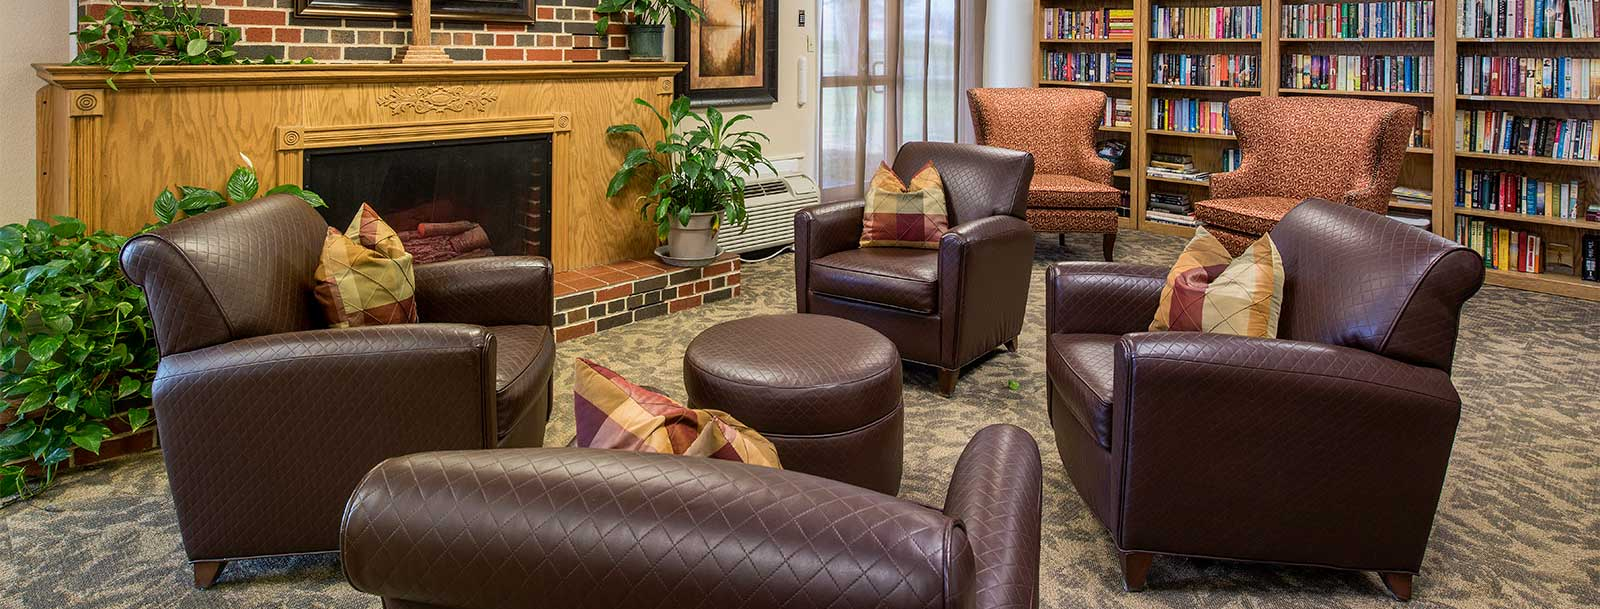 Residents enjoying the library at the senior living in Rolla